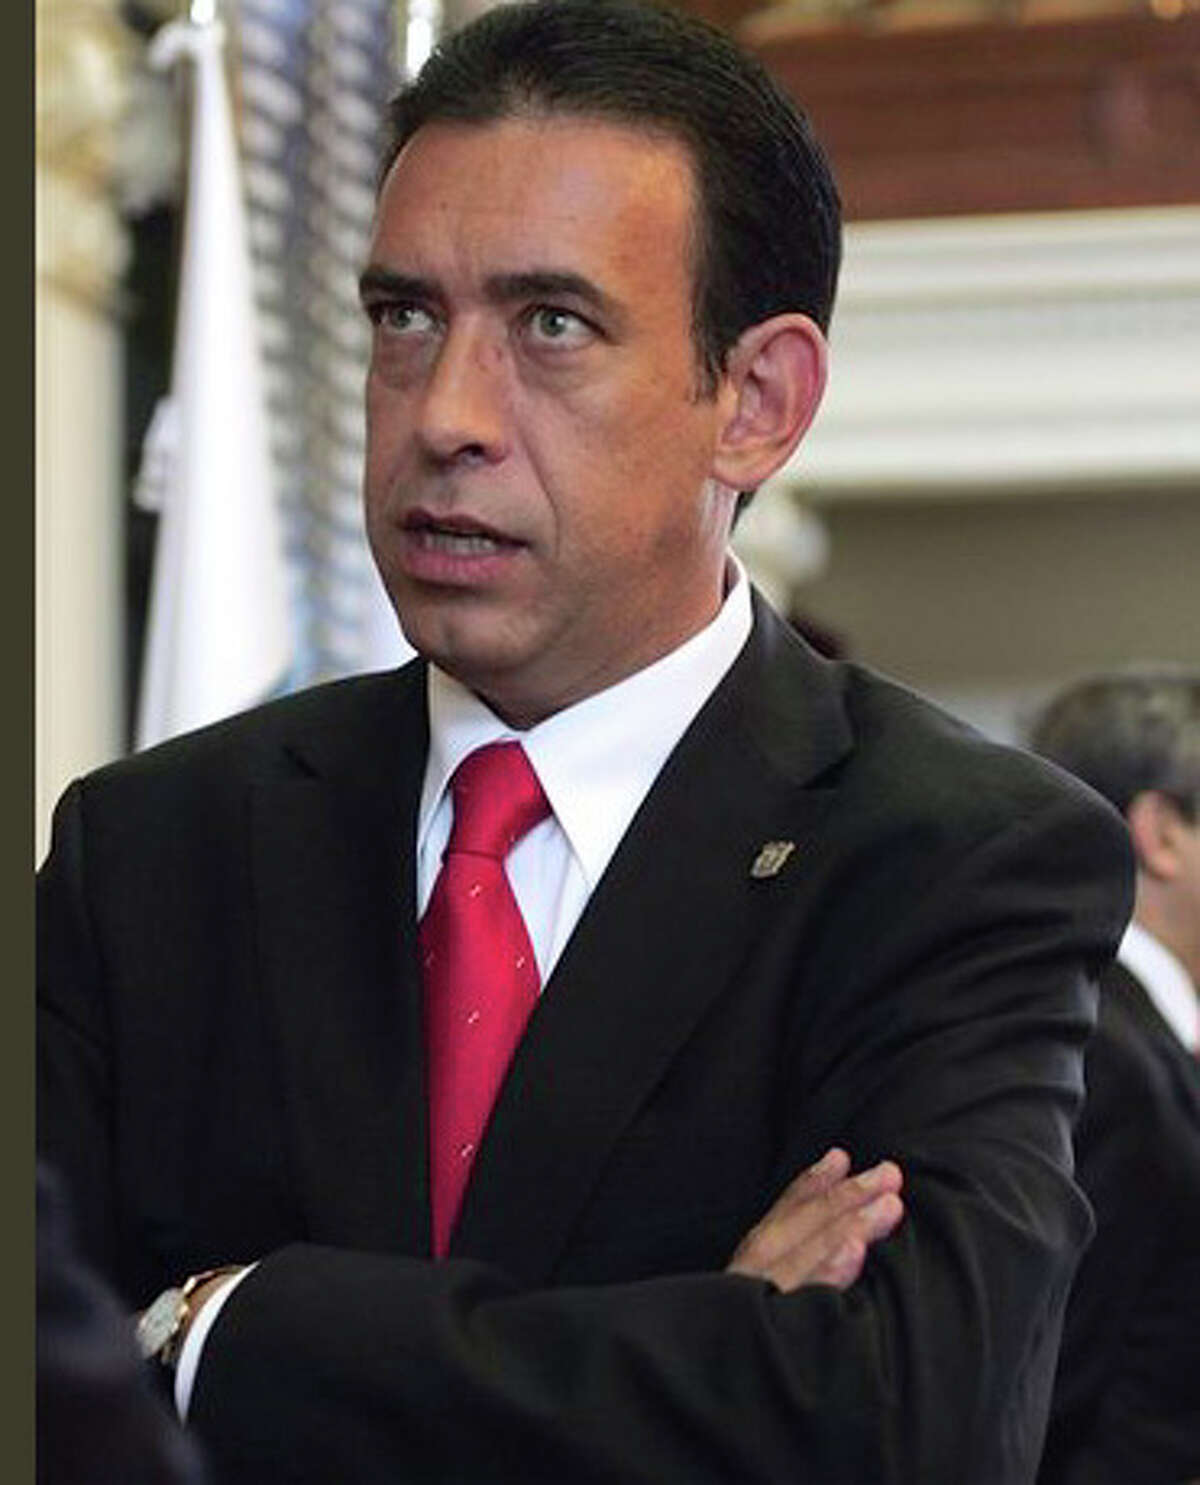 Former Coahuila governor Humberto Moreira, pictured here in 2006 at the Texas Capitol in Austin, is the subject of an investigation by the U.S. government. He hasn't been charged with a crime, but in September 2016 his mother-in-law agreed to give up her San Antonio house as part of the probe. Moreira was head of Mexico's Institutional Revolutionary Party but resigned in 2011 over a financial scandal that threatened the party's efforts to rebrand itself as corruption-free and retake the presidency in 2012.